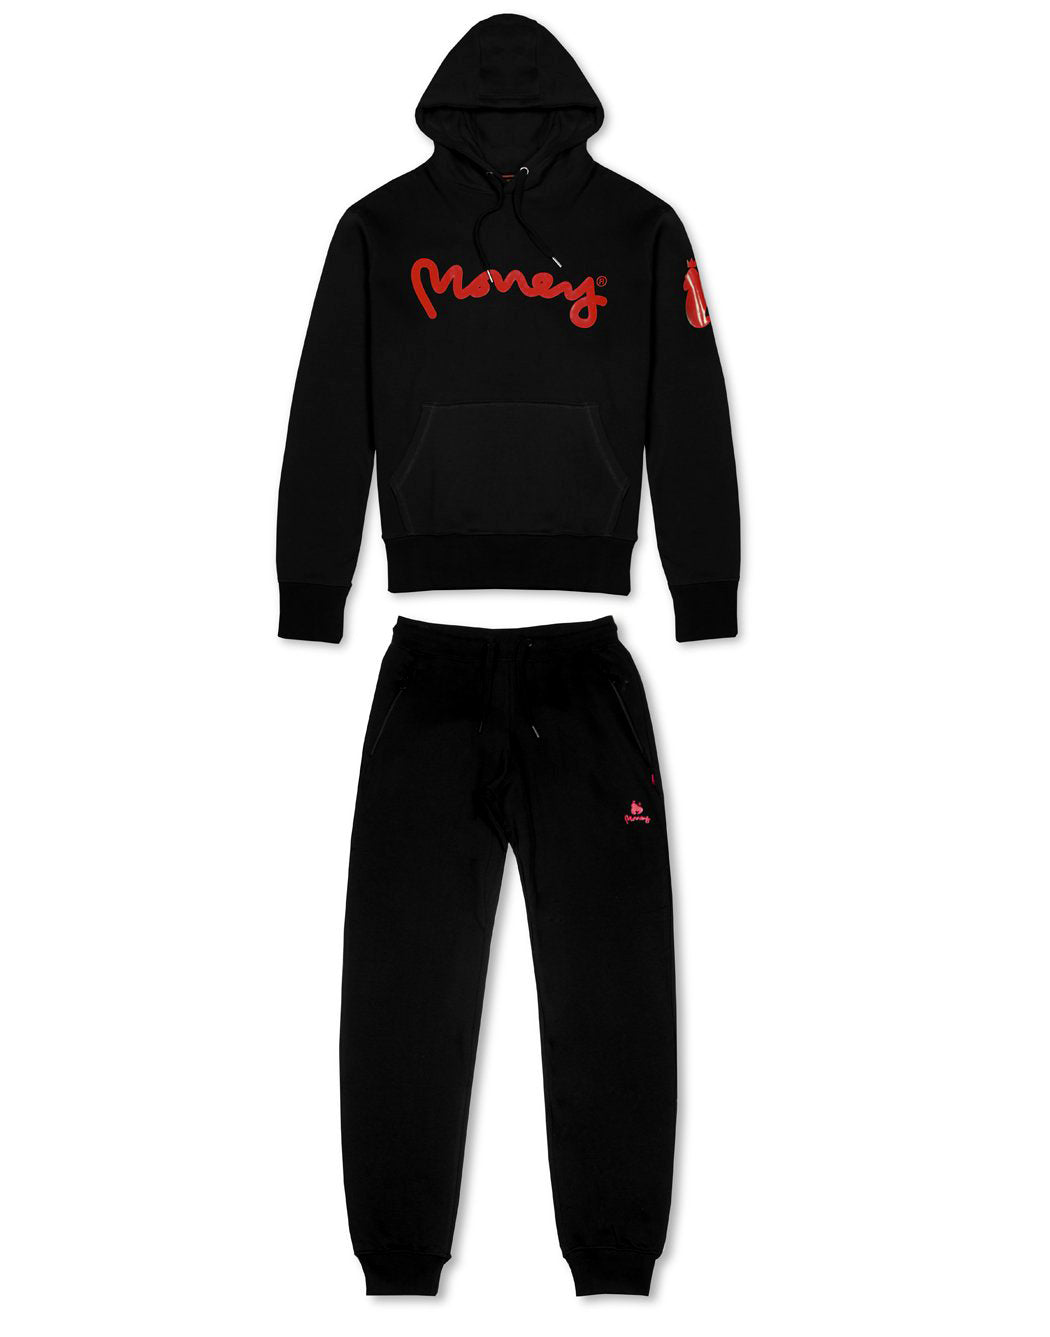 Money Clothing signature ape hood tracksuit in black